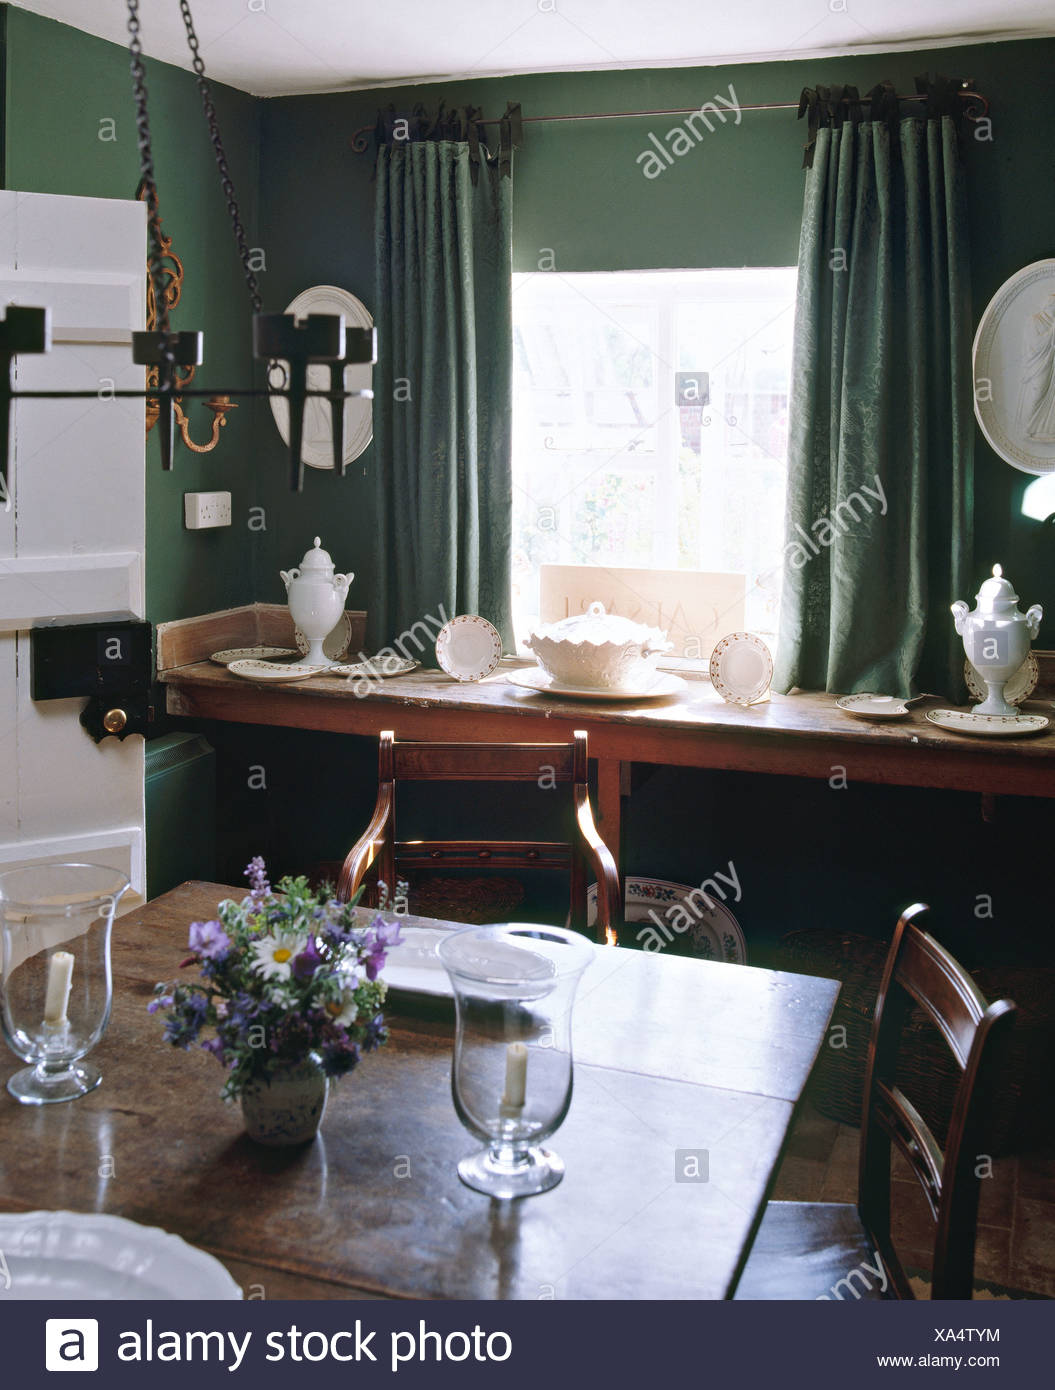 Oak Table And Antique Chairs In Dark Green Cottage Dining Room With Simple Side Below